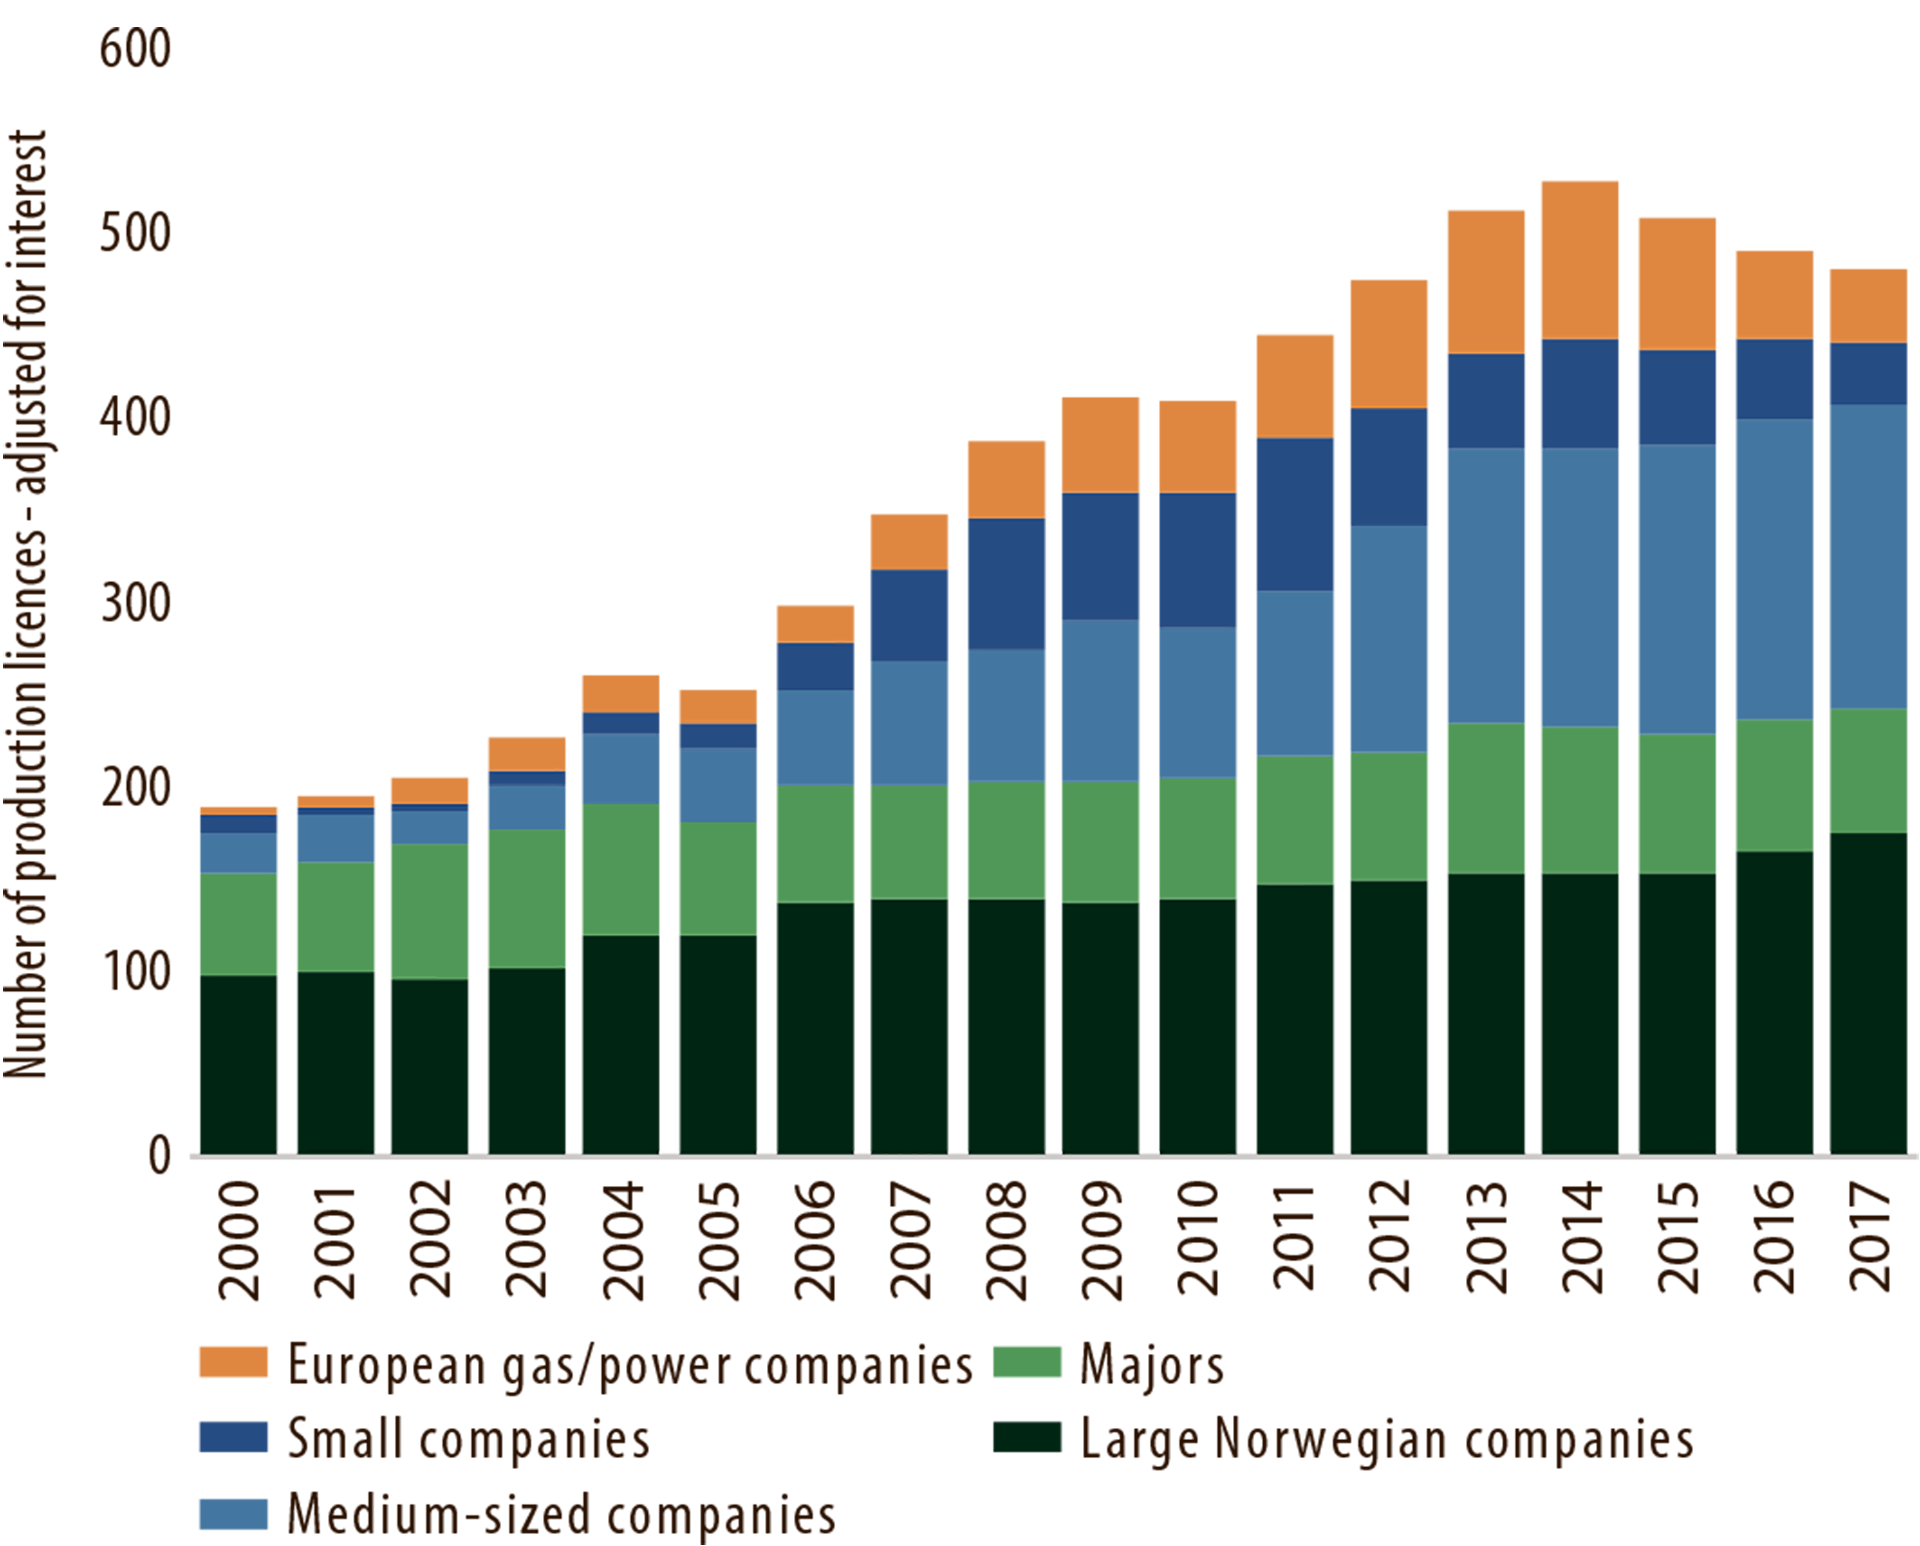 Figure 5.4 Production licences by company category in 2000-17.